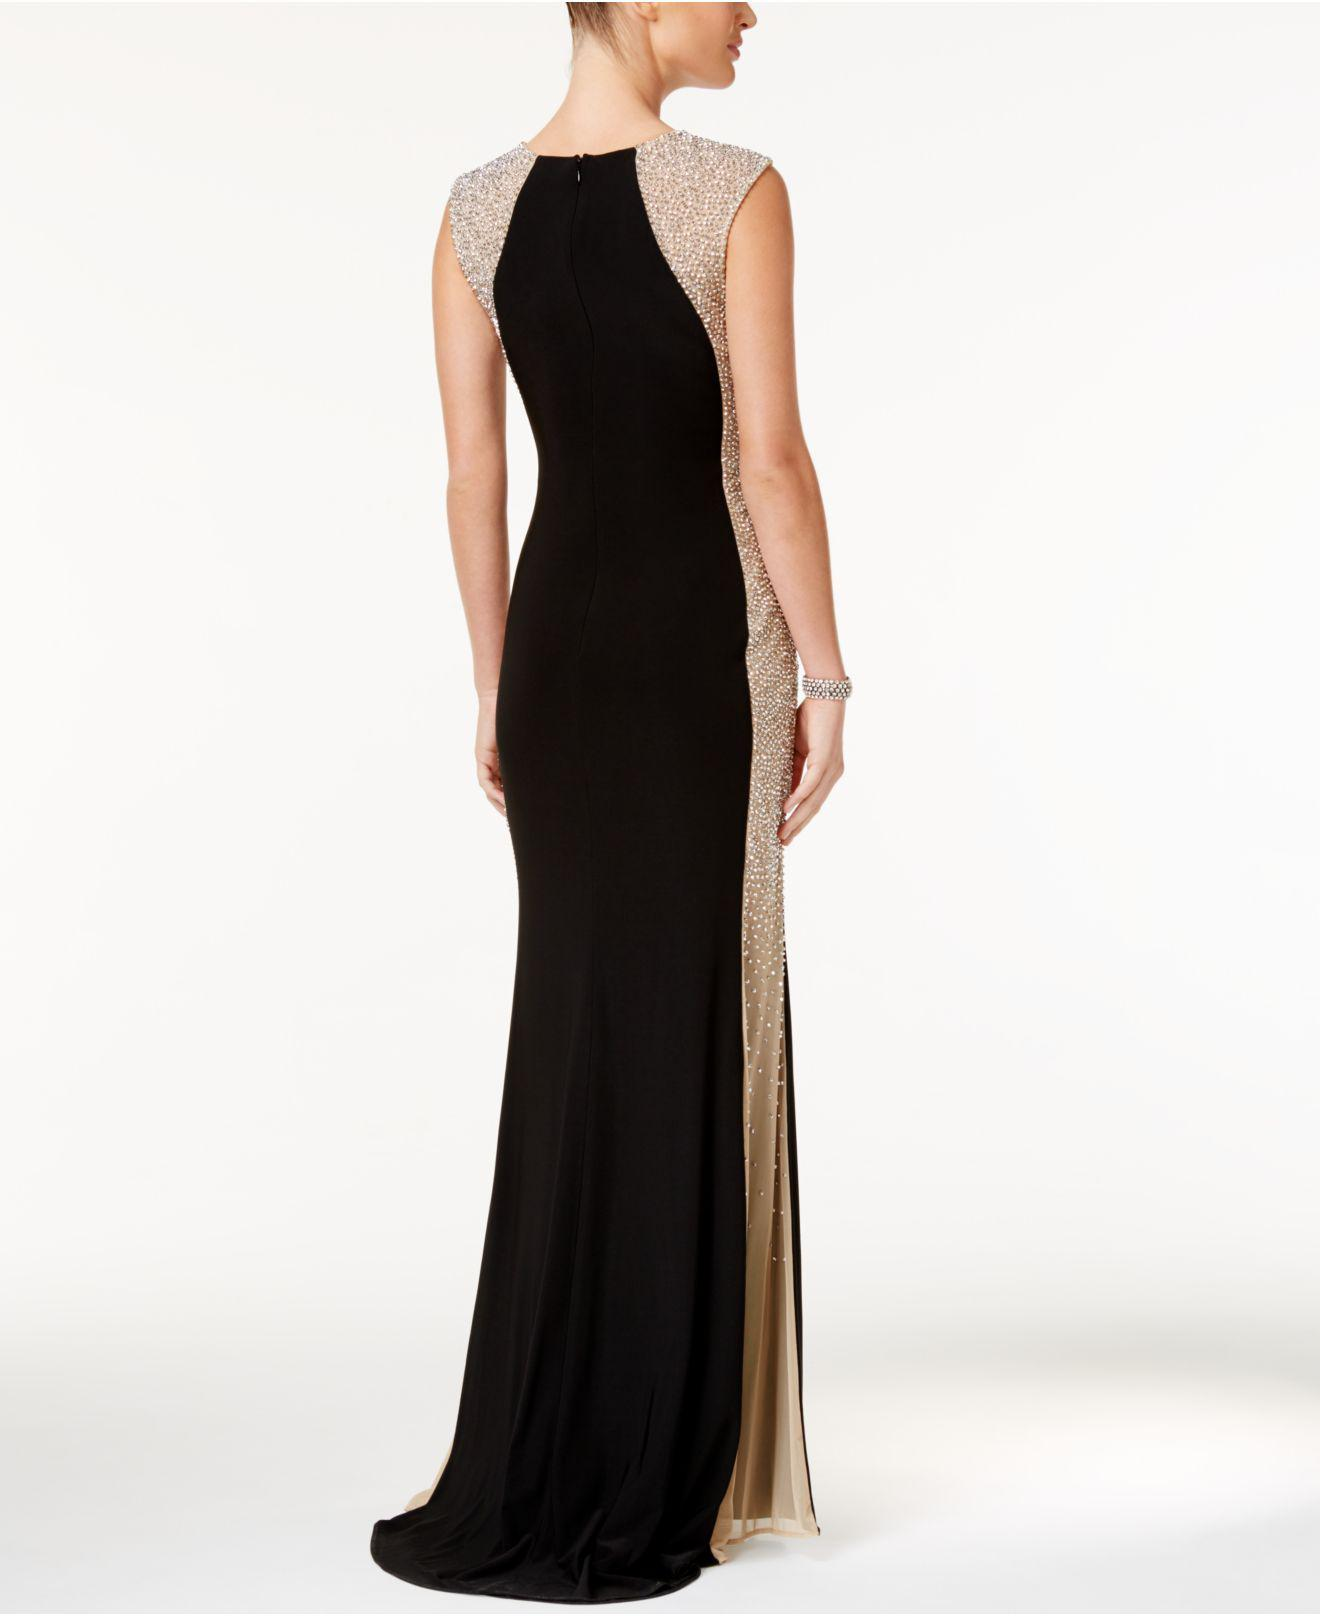 aaba8b83 Xscape - Black Petite Beaded Illusion Gown - Lyst. View fullscreen